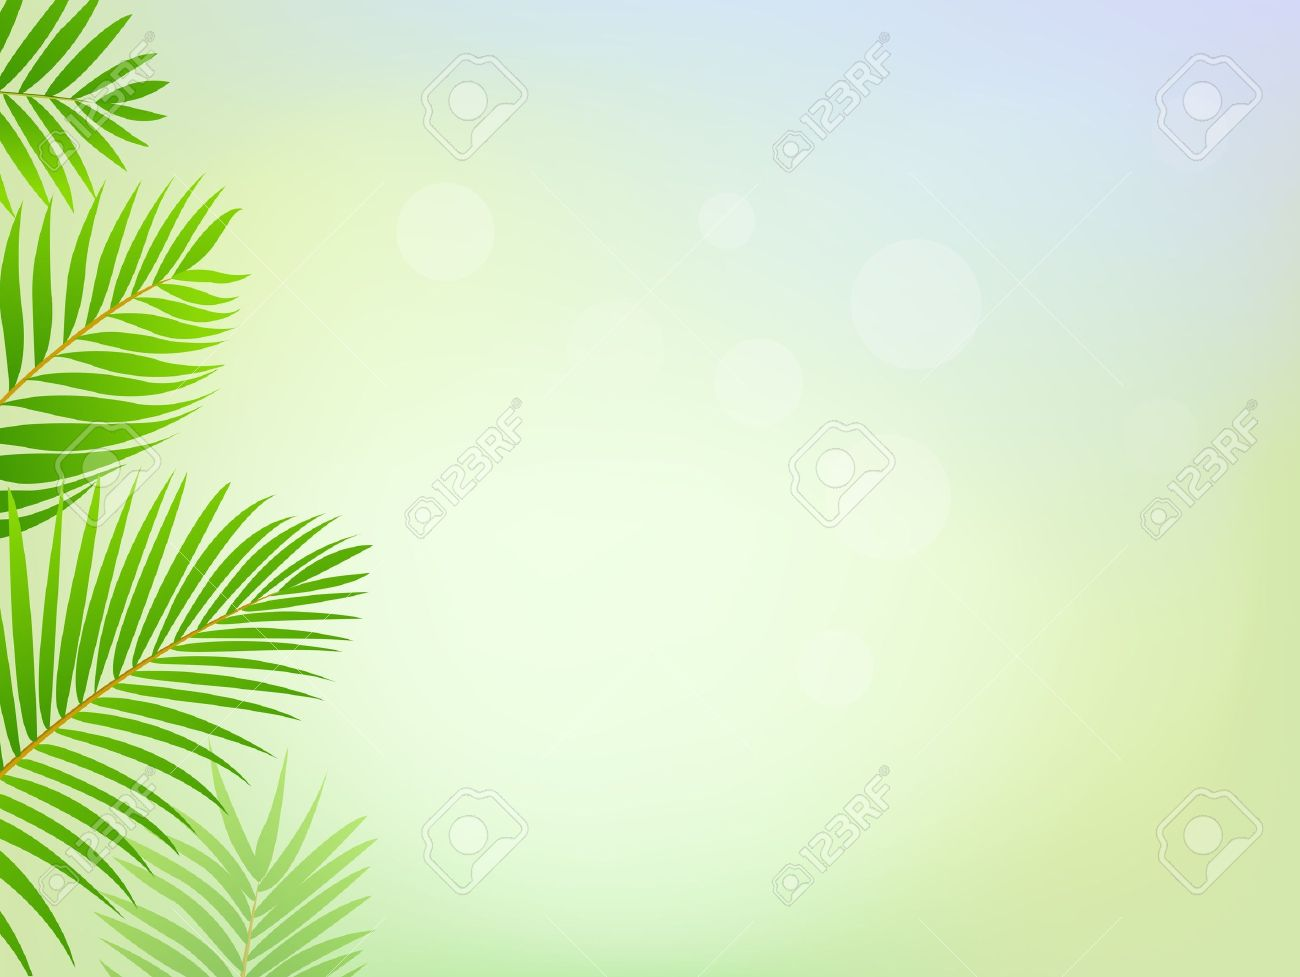 palm tree frame background (green clipart